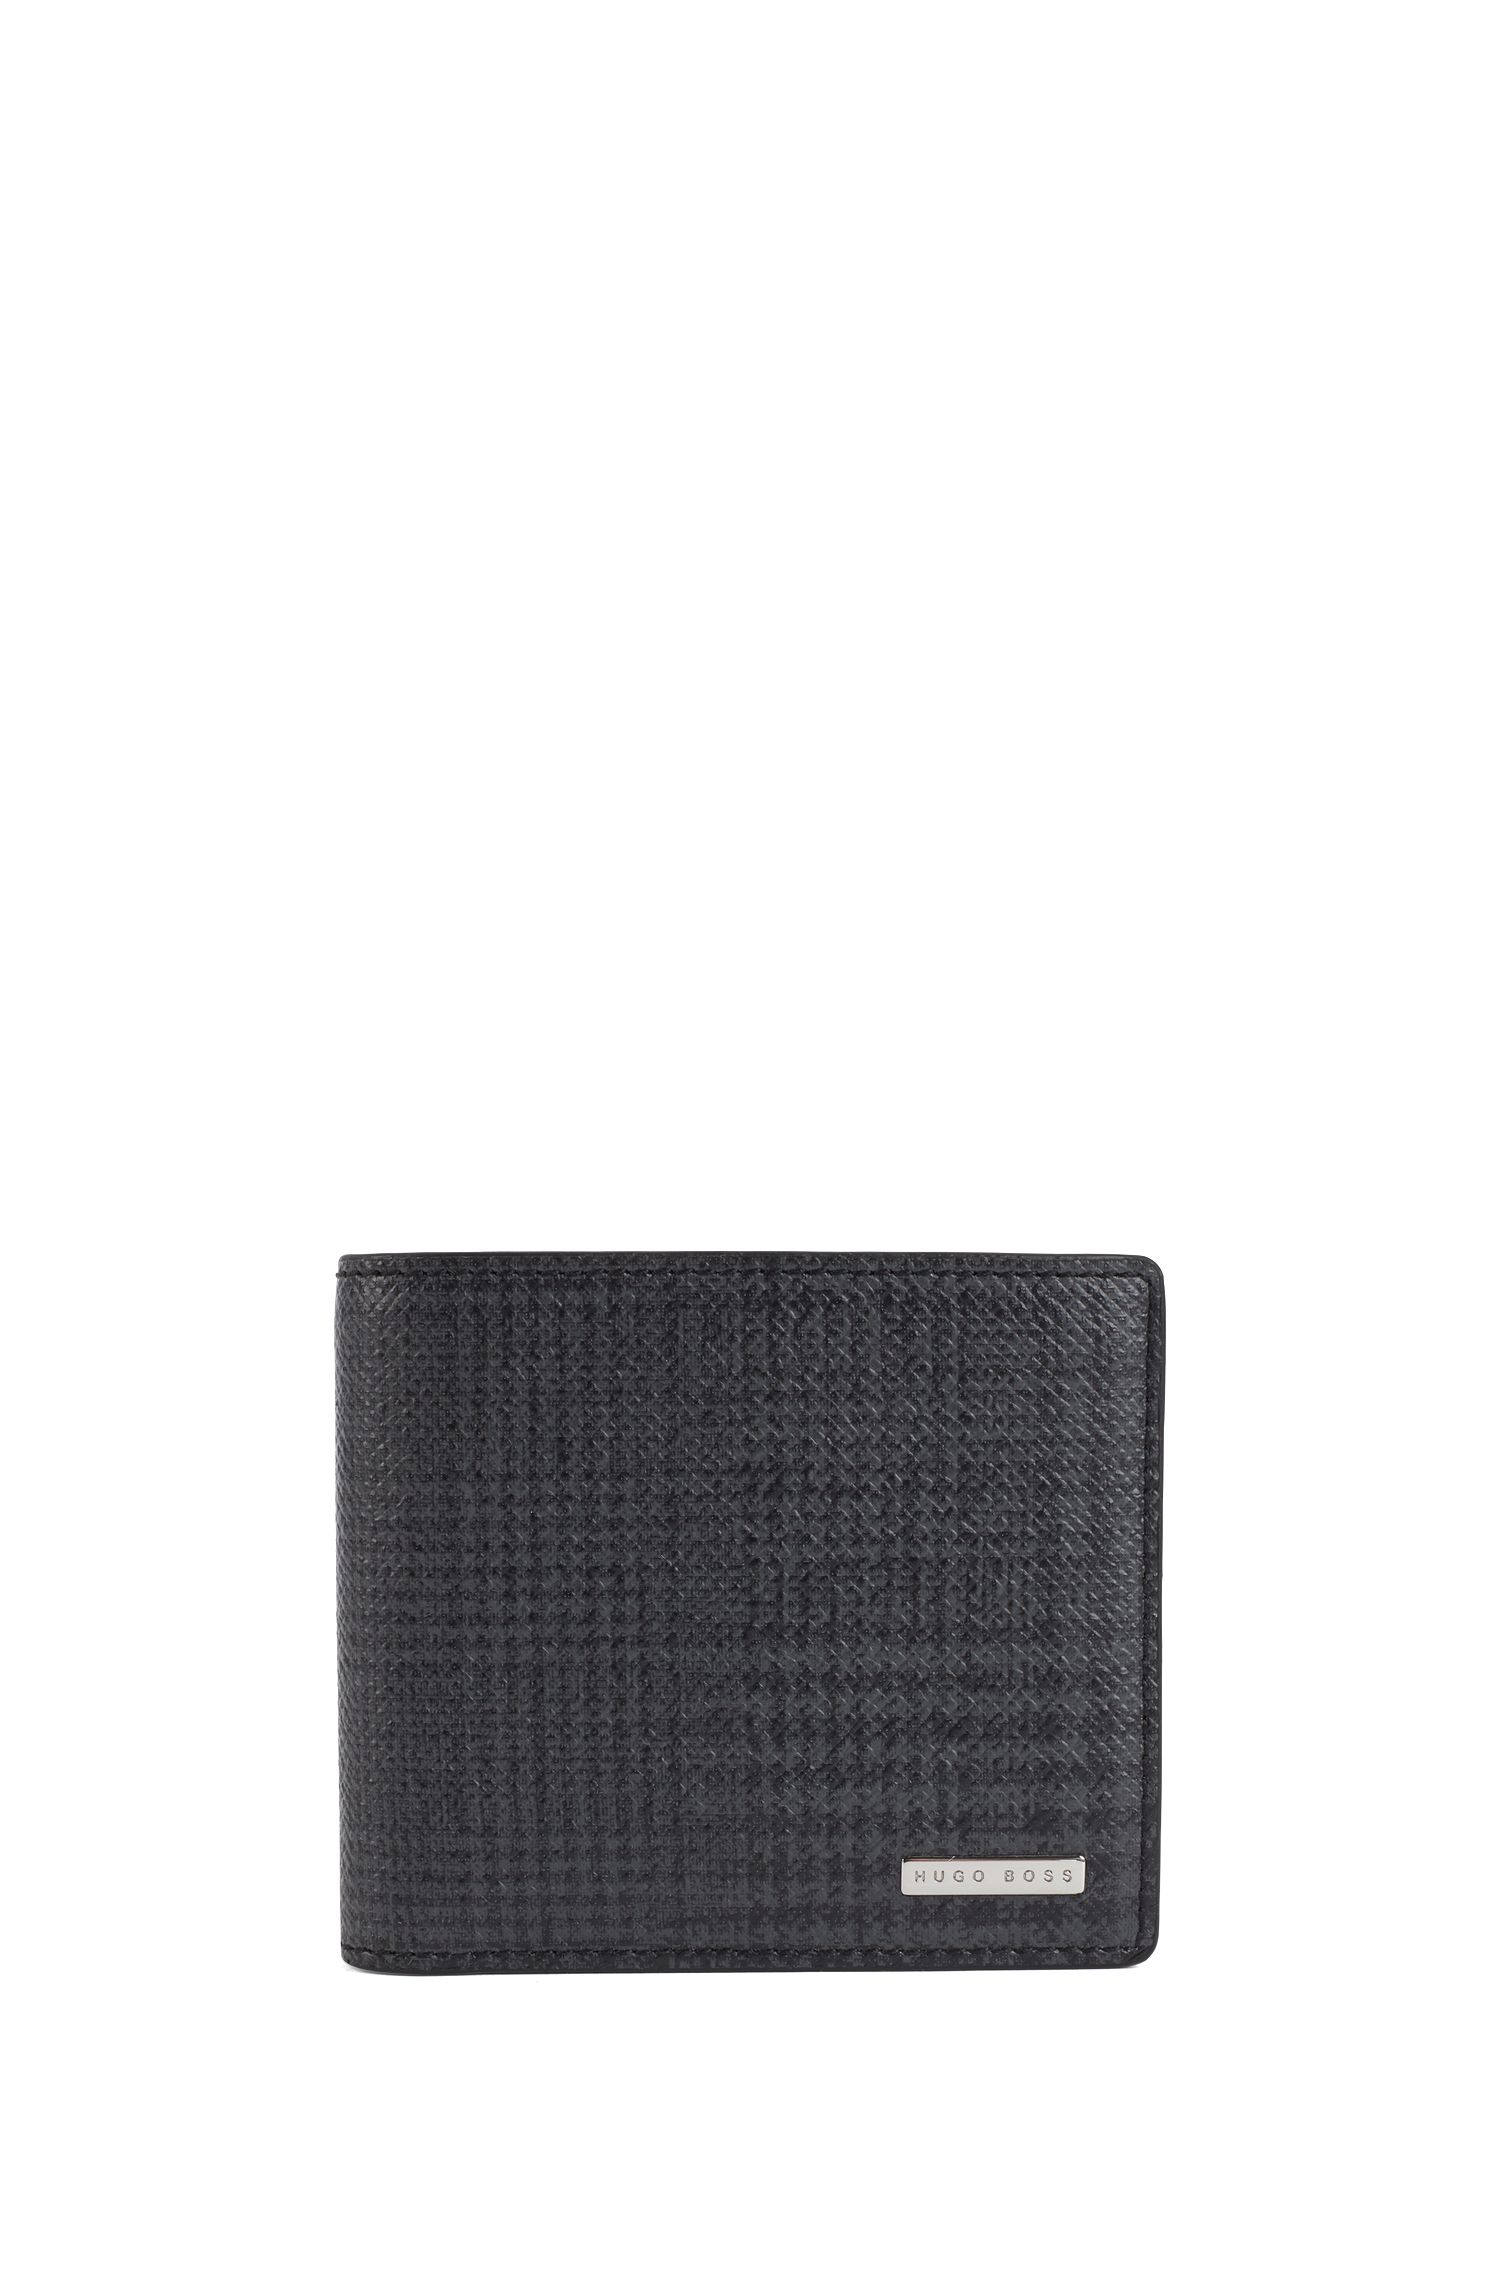 Signature Collection billfold wallet in check-print calf leather, Patterned